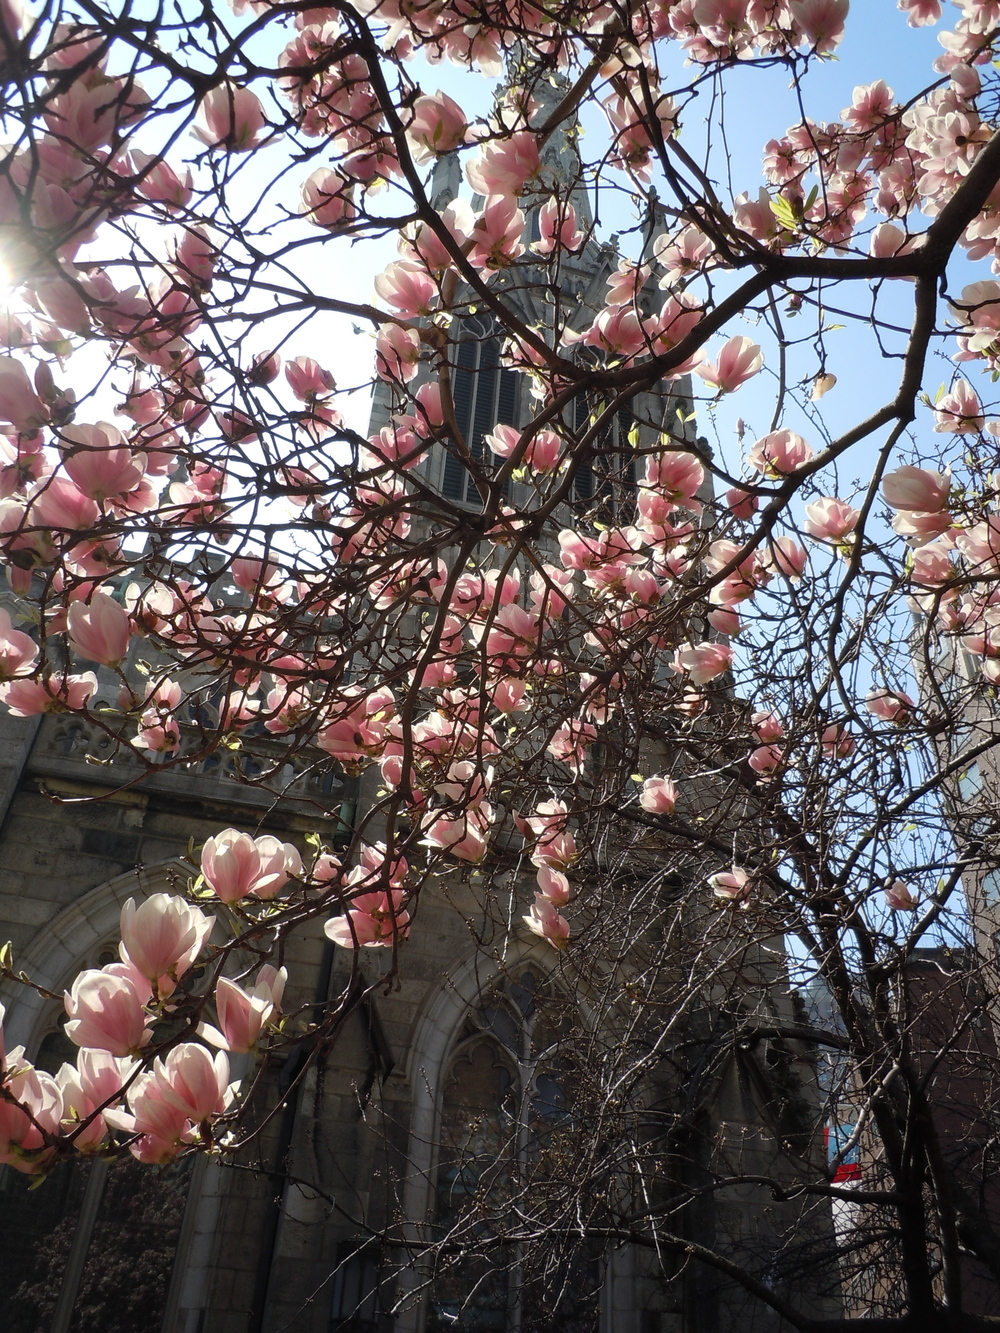 Magnolia-Veiled Cathedral , taken on Broadway in The Village, Early Spring 2013